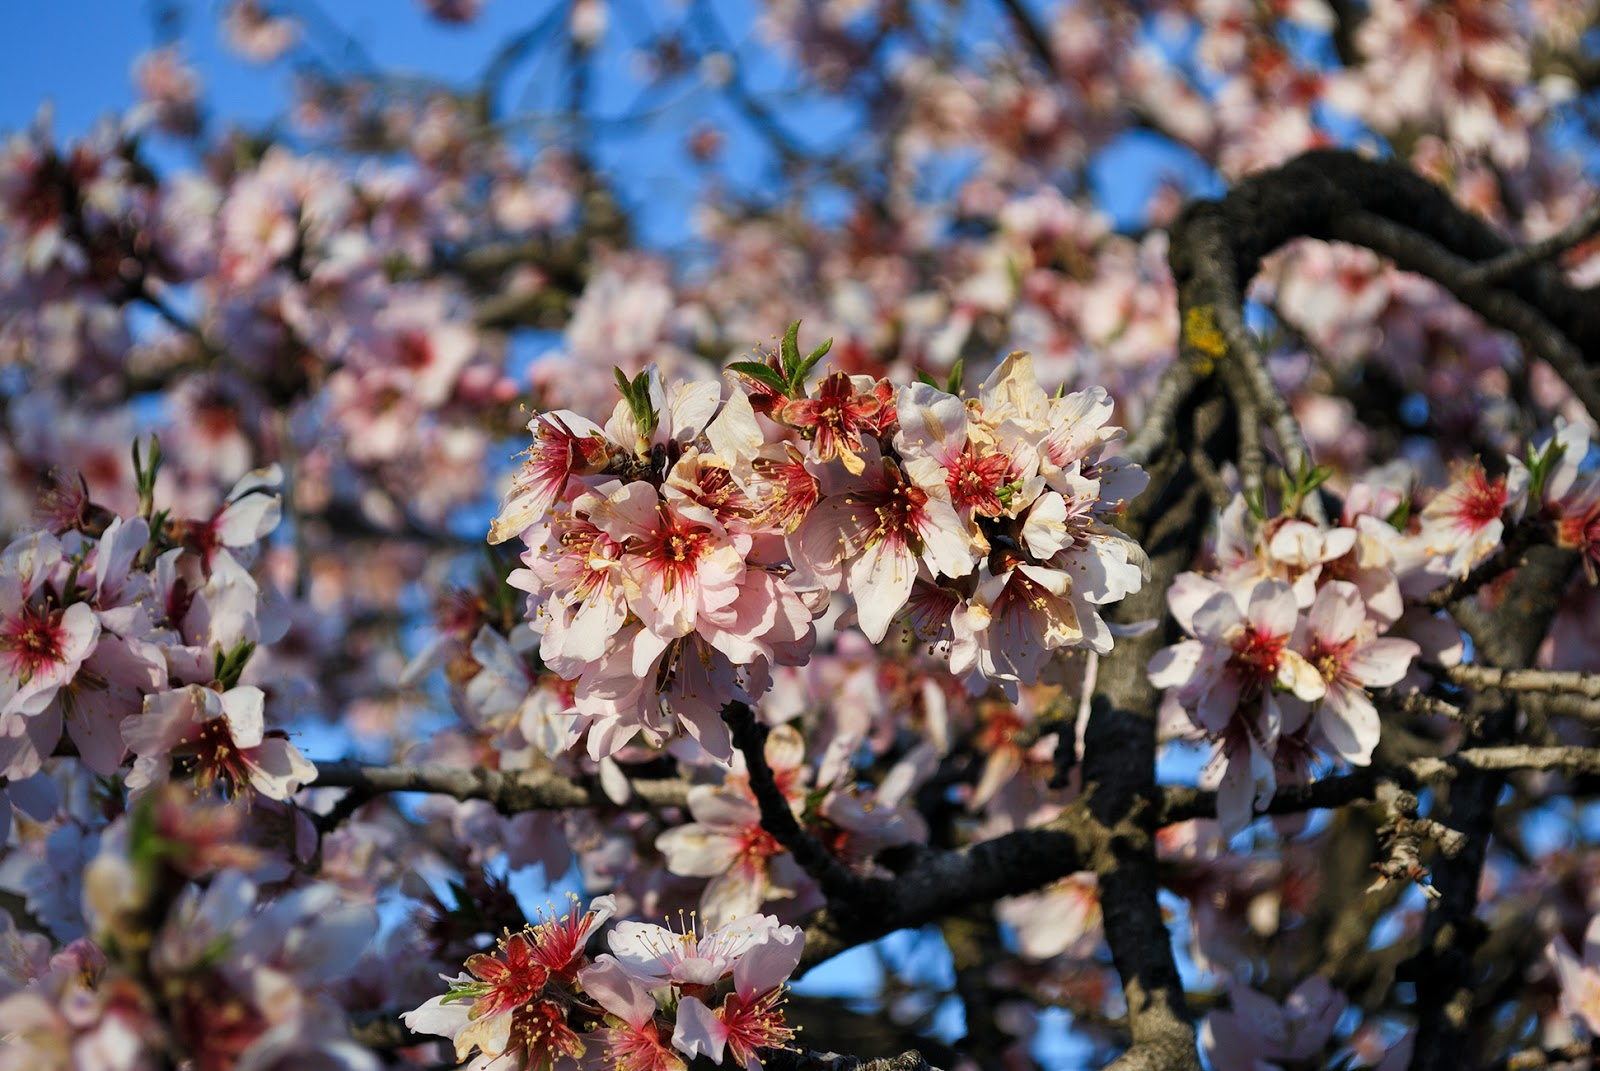 Quinta de los Molinos Madrid flower cherry blossom almond tree